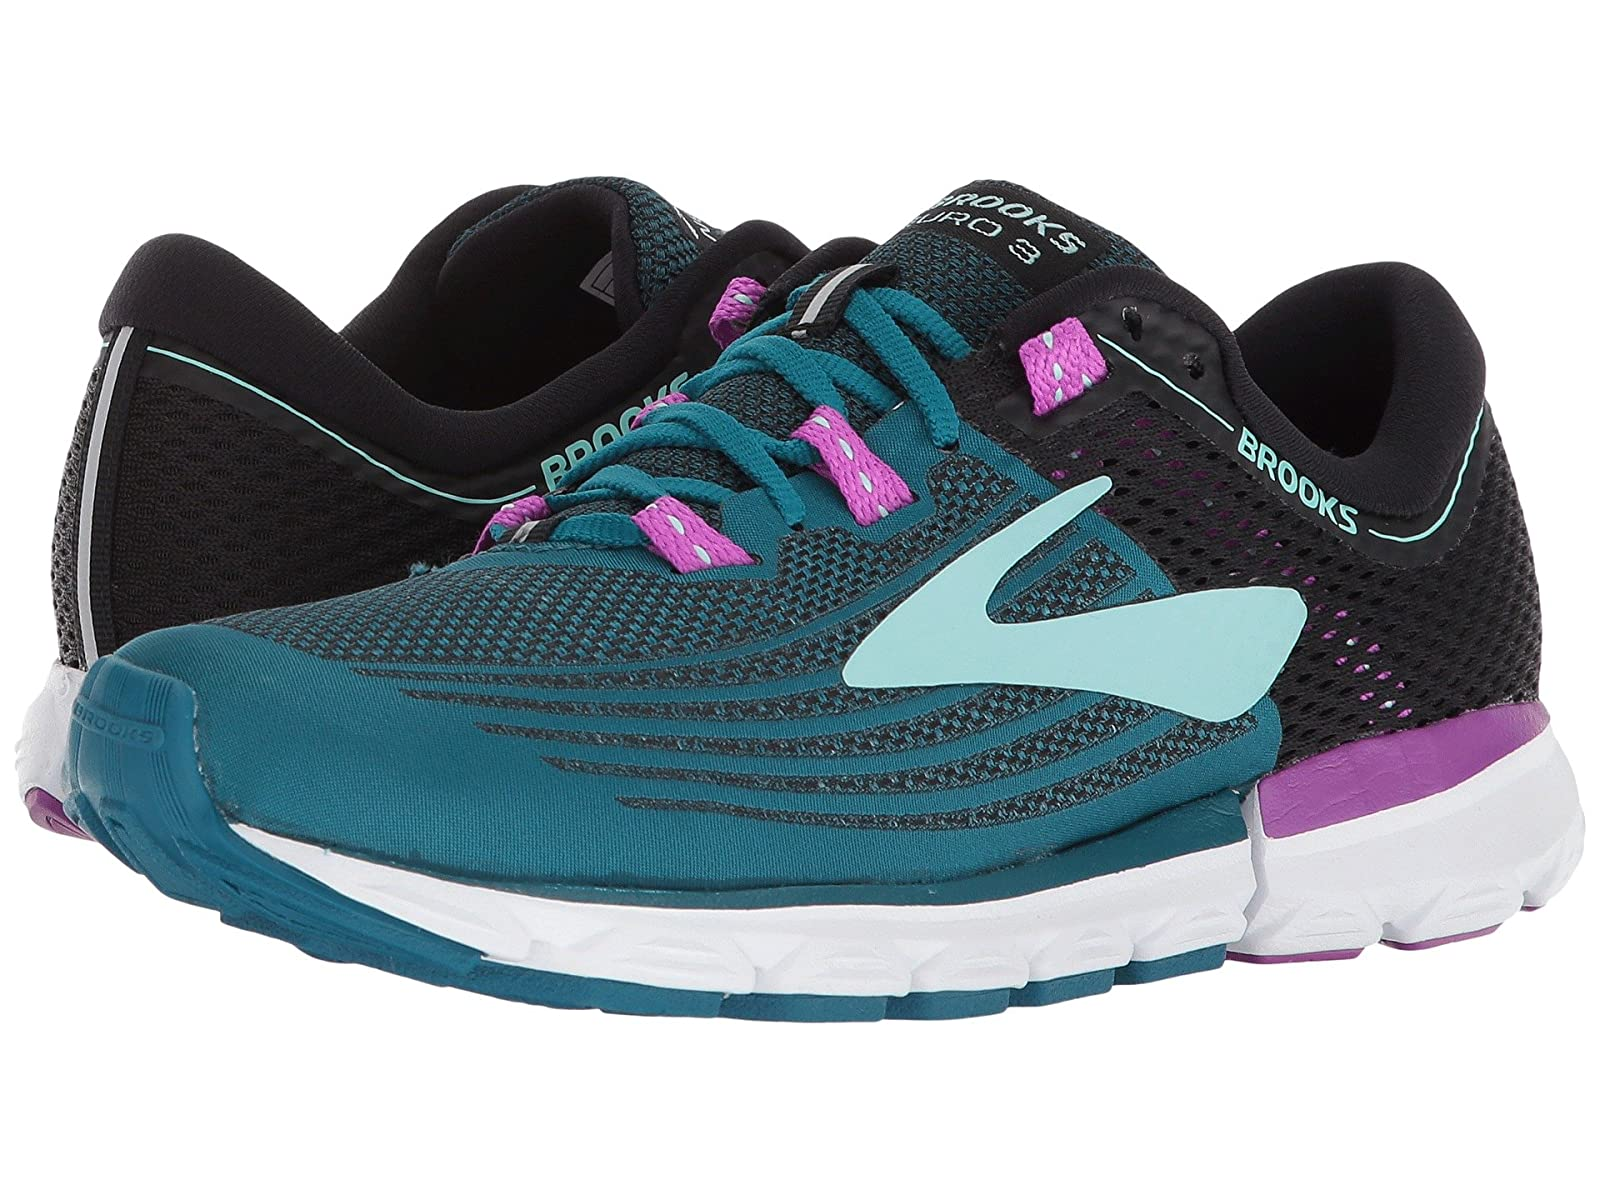 Brooks Neuro 3Atmospheric grades have affordable shoes